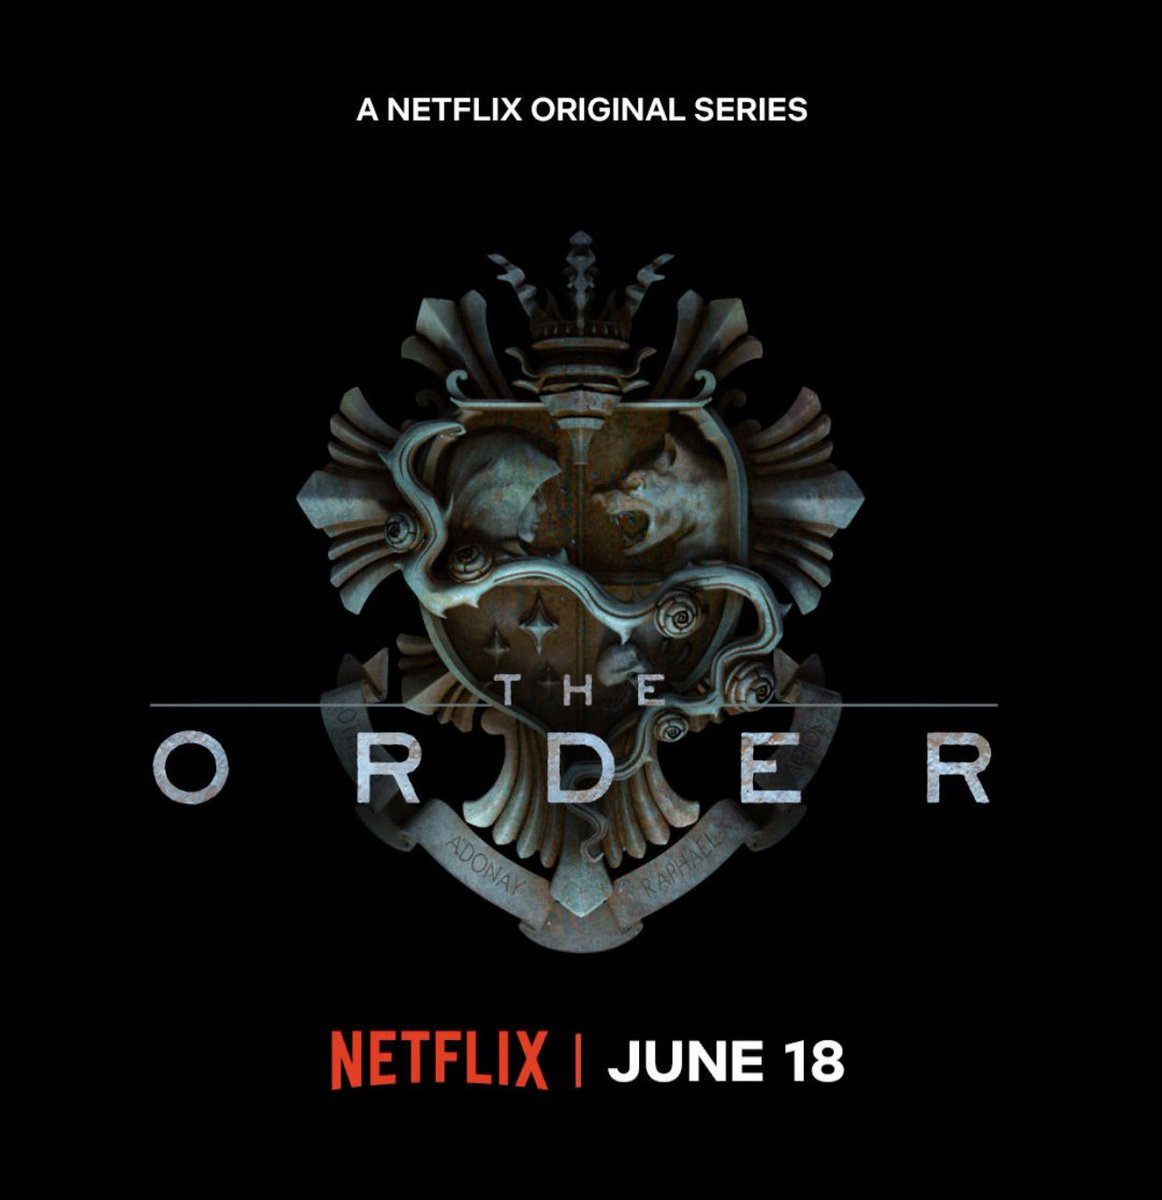 #theorder